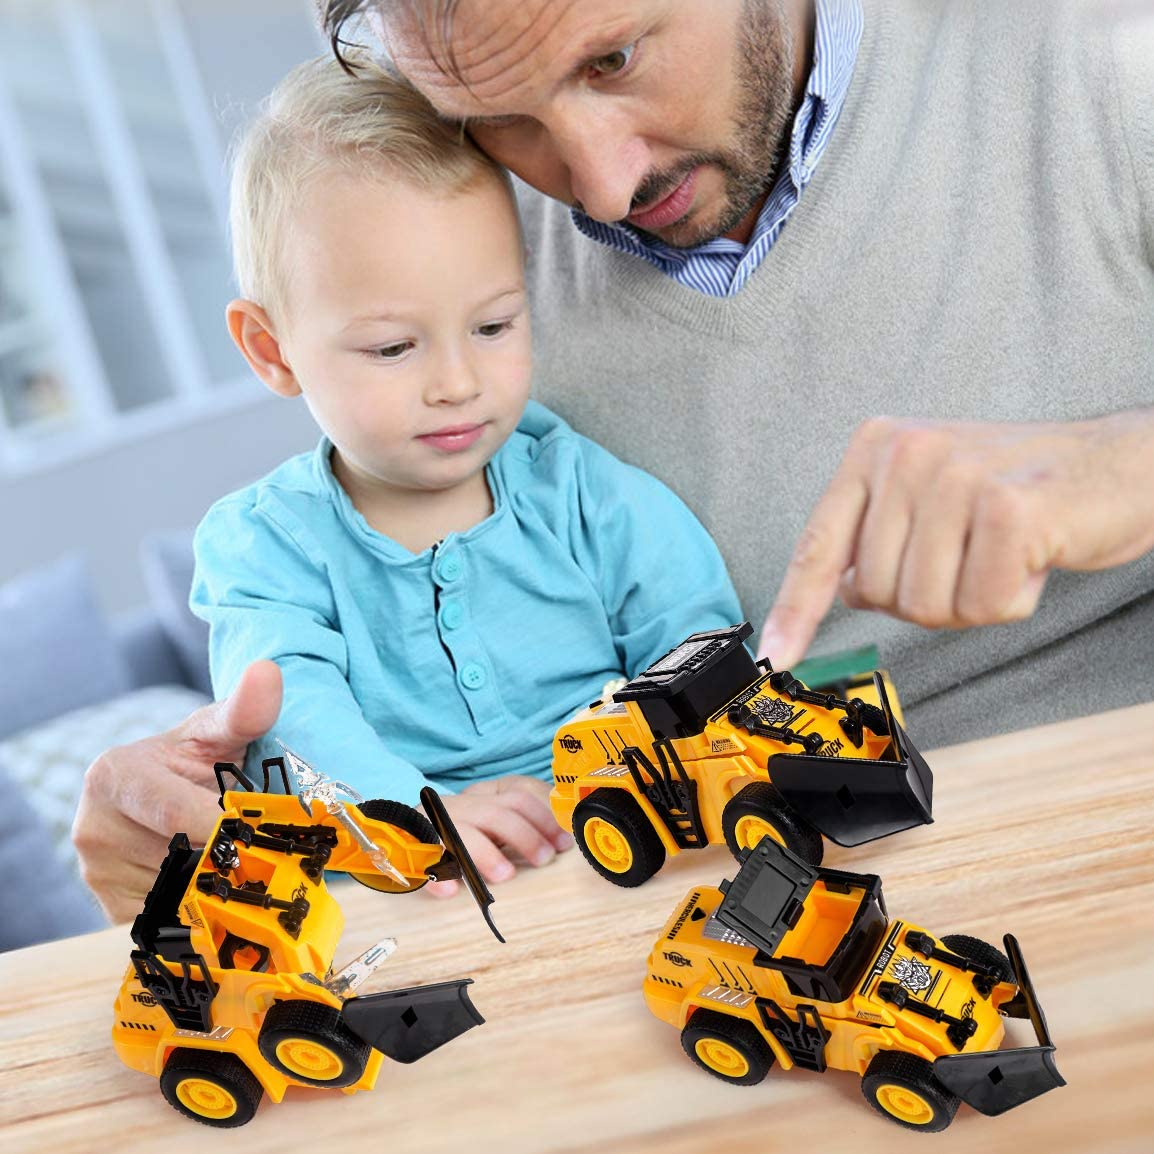 Highttoy Transformer Car for Kids Construction Bulldozer Transformer Toy with Weapons Kids Pull Back Transforming Robot Car Birthday Gifts for Boys Age 3-8 Construction Transformers Toys for Kids